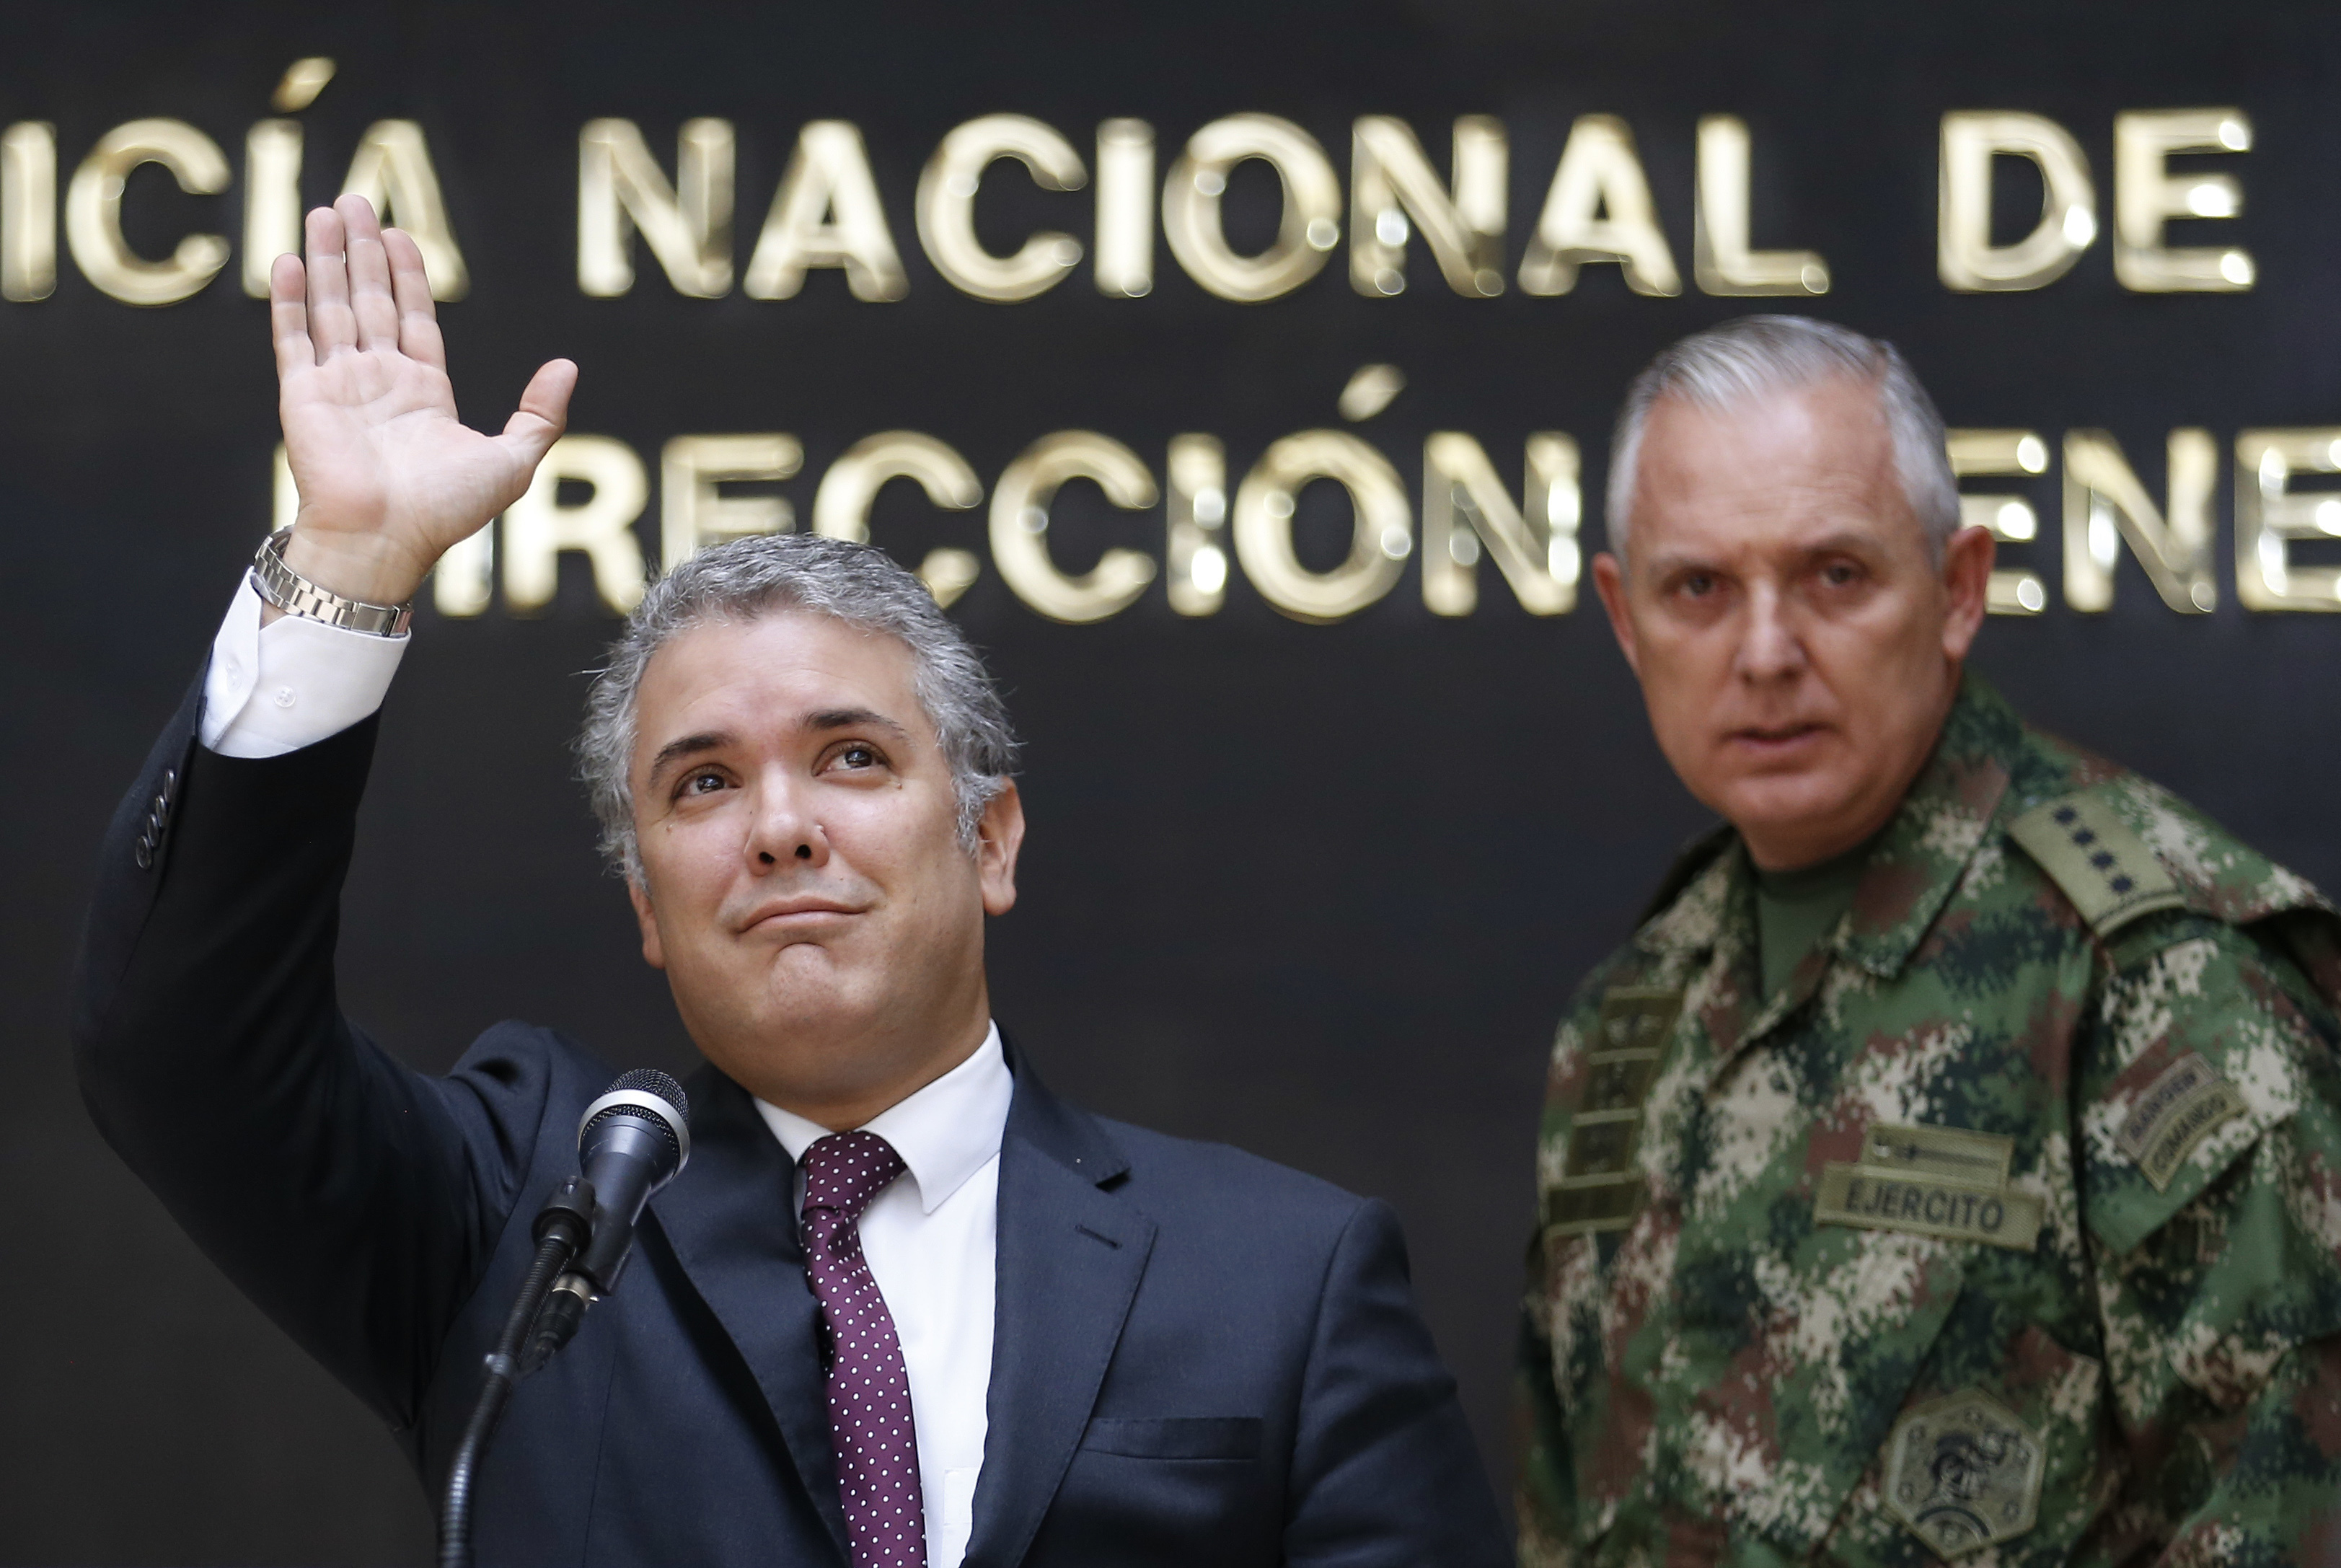 Colombia's President Ivan Duque, left, stands next to the Commander of the Armed Forces Gen. Alberto Mejia, at police headquarters in Bogota, Colombia, Sept. 19, 2018. Duque said Saturday the armed forces had killed a dissident rebel of the disbanded...